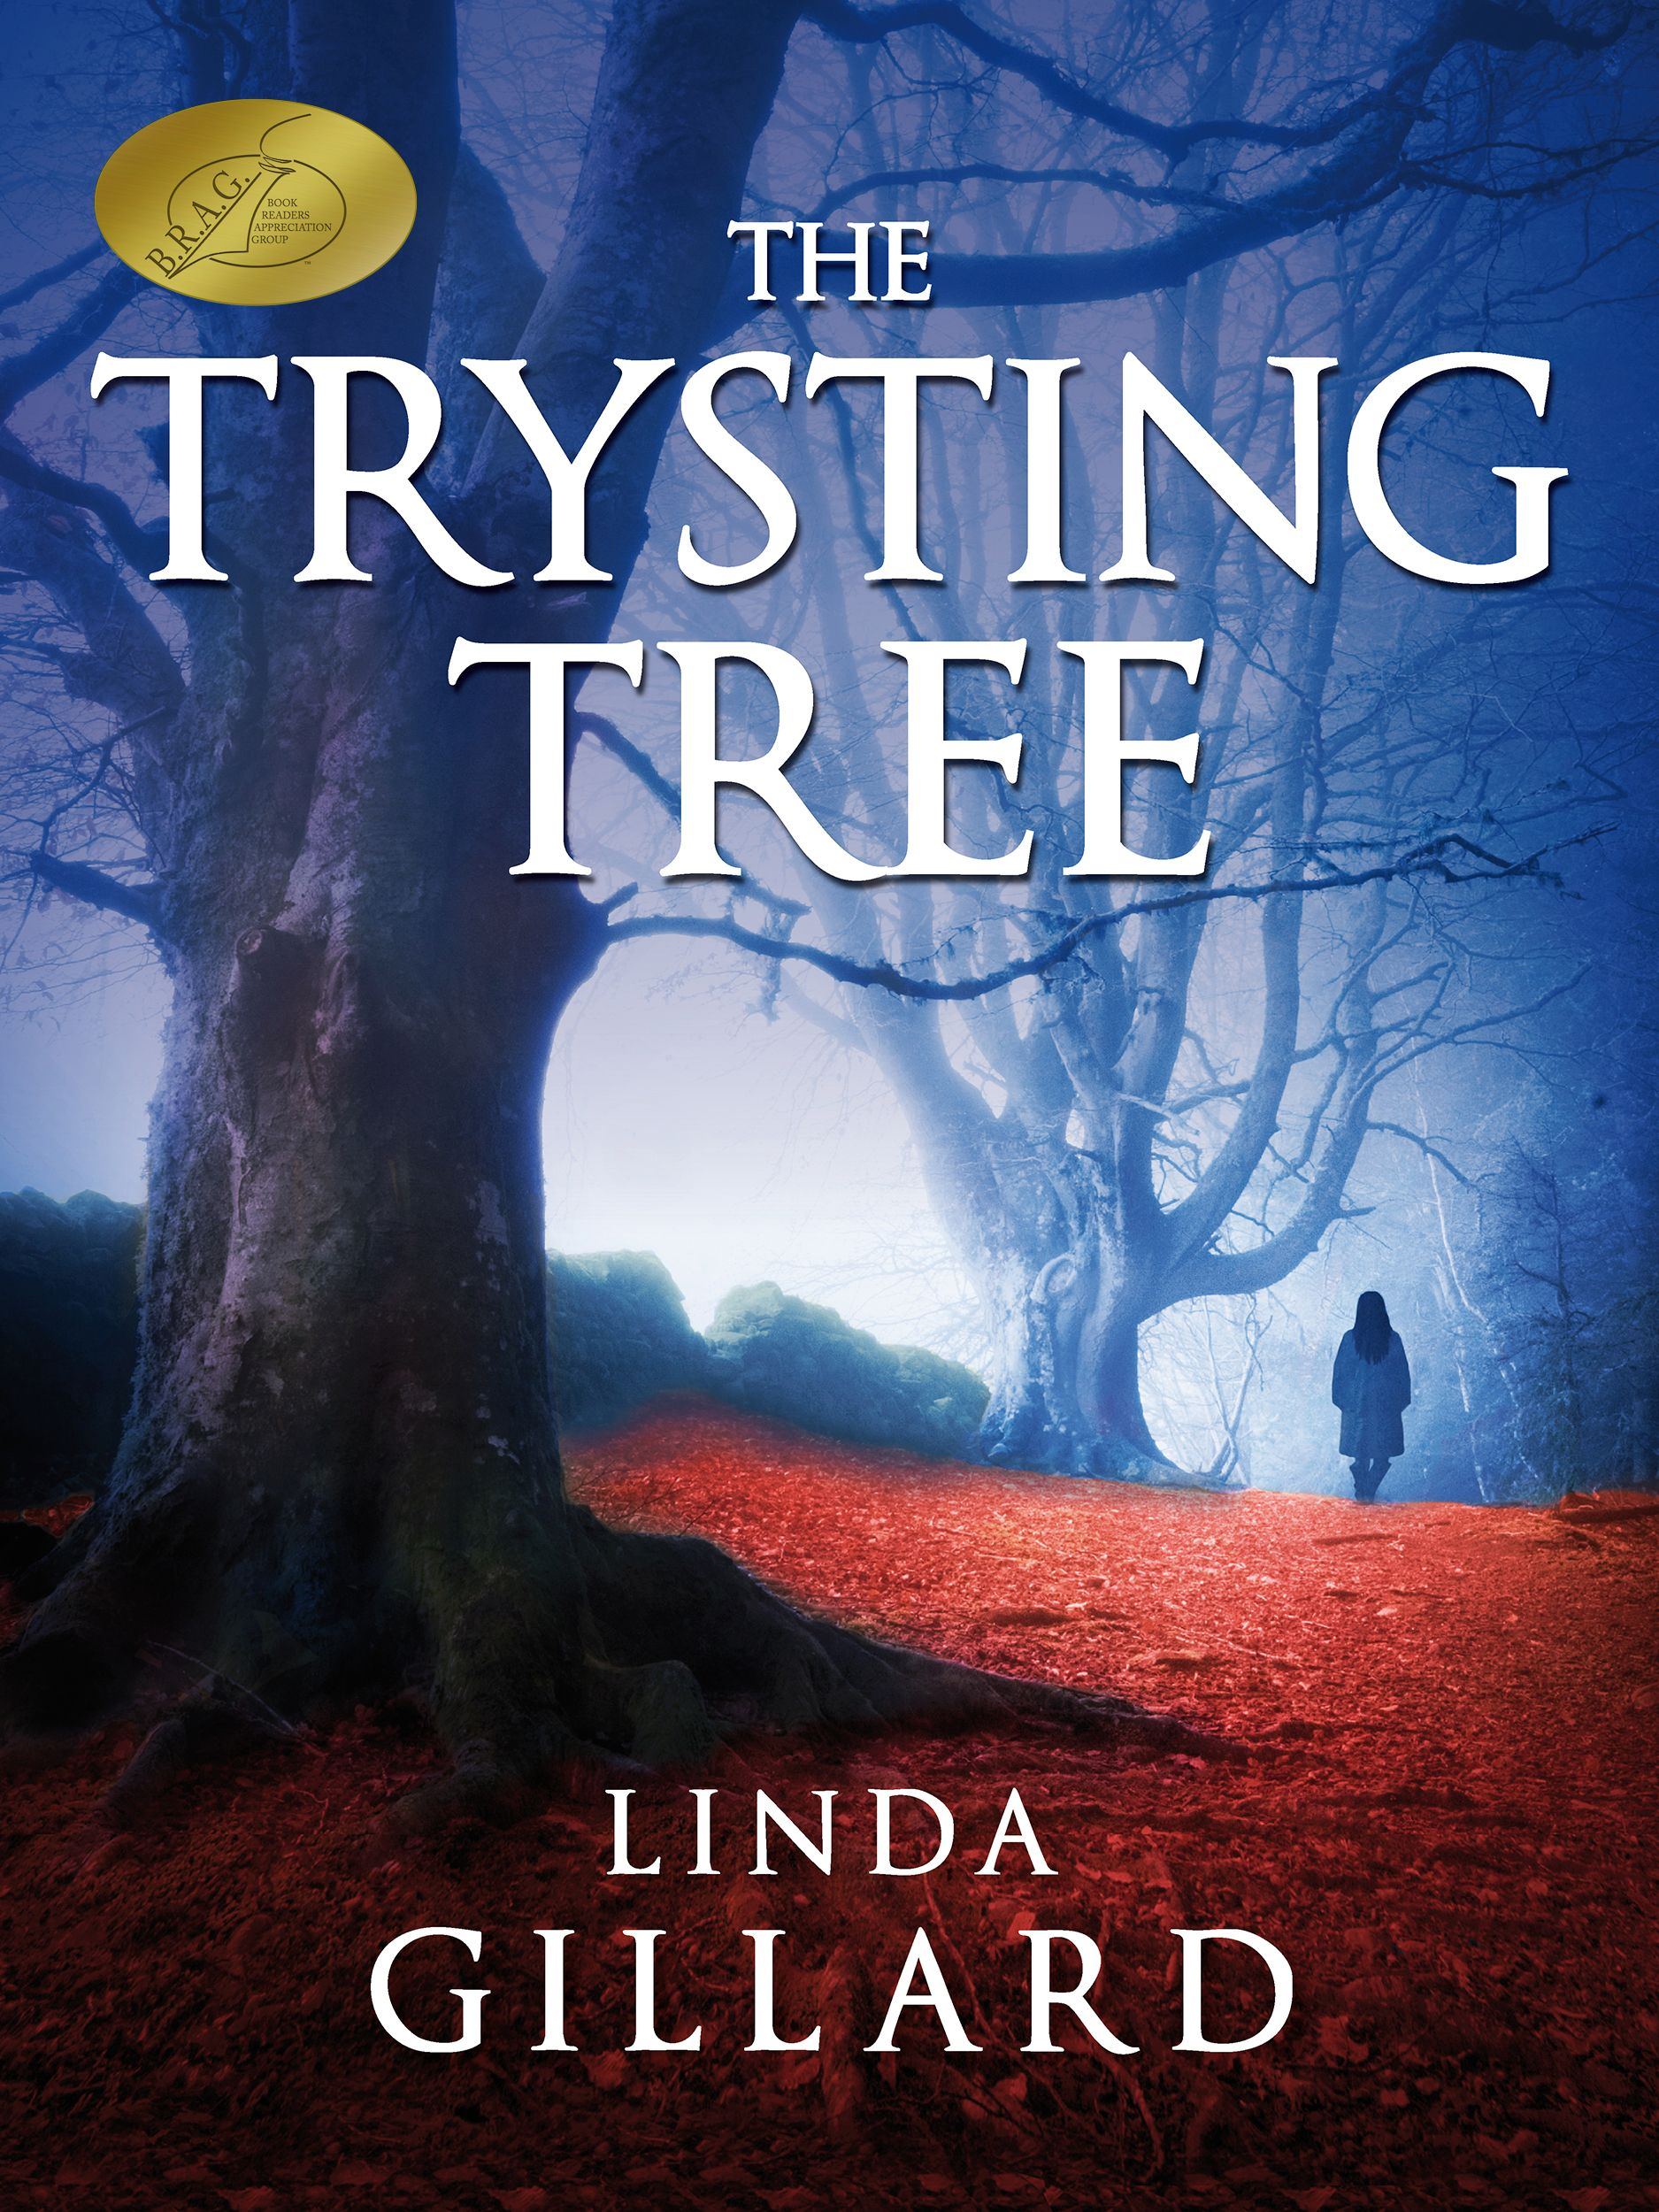 The Trysting Tree by Linda Gillard